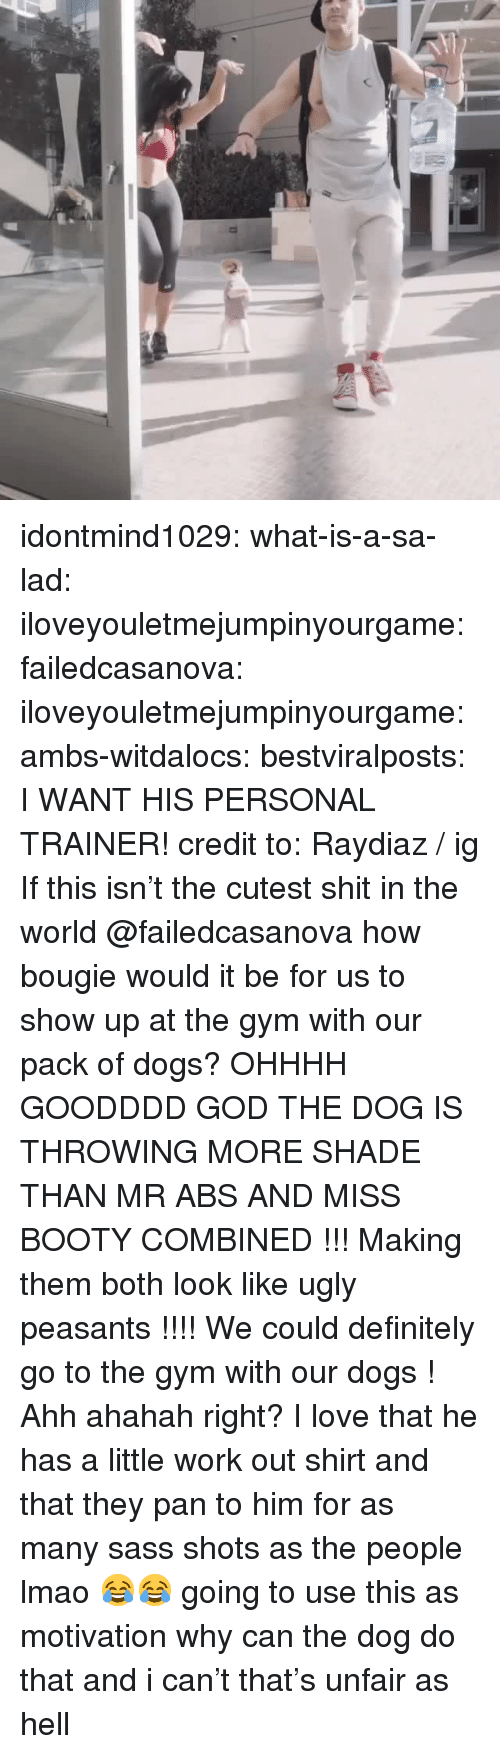 Booty, Definitely, and Dogs: idontmind1029: what-is-a-sa-lad:  iloveyouletmejumpinyourgame:  failedcasanova:  iloveyouletmejumpinyourgame:   ambs-witdalocs:   bestviralposts:  I WANT HIS PERSONAL TRAINER! credit to: Raydiaz / ig   If this isn't the cutest shit in the world    @failedcasanova how bougie would it be for us to show up at the gym with our pack of dogs?    OHHHH GOODDDD GOD THE DOG IS THROWING MORE SHADE THAN MR ABS AND MISS BOOTY COMBINED !!! Making them both look like ugly peasants !!!! We could definitely go to the gym with our dogs !   Ahh ahahah right? I love that he has a little work out shirt and that they pan to him for as many sass shots as the people lmao 😂😂  going to use this as motivation   why can the dog do that and i can't that's unfair as hell